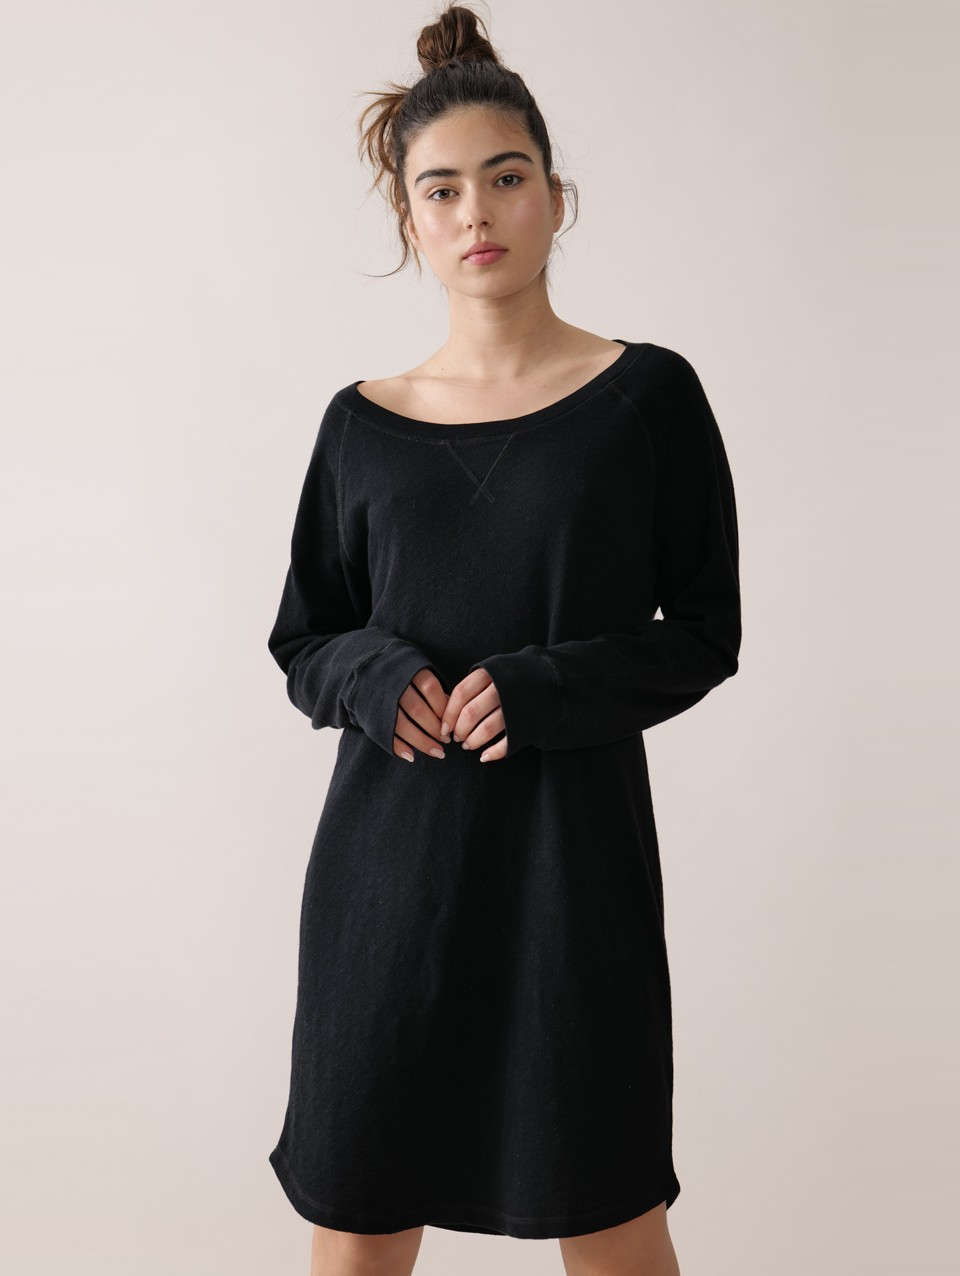 Ami 100% Cotton Raglan Dress